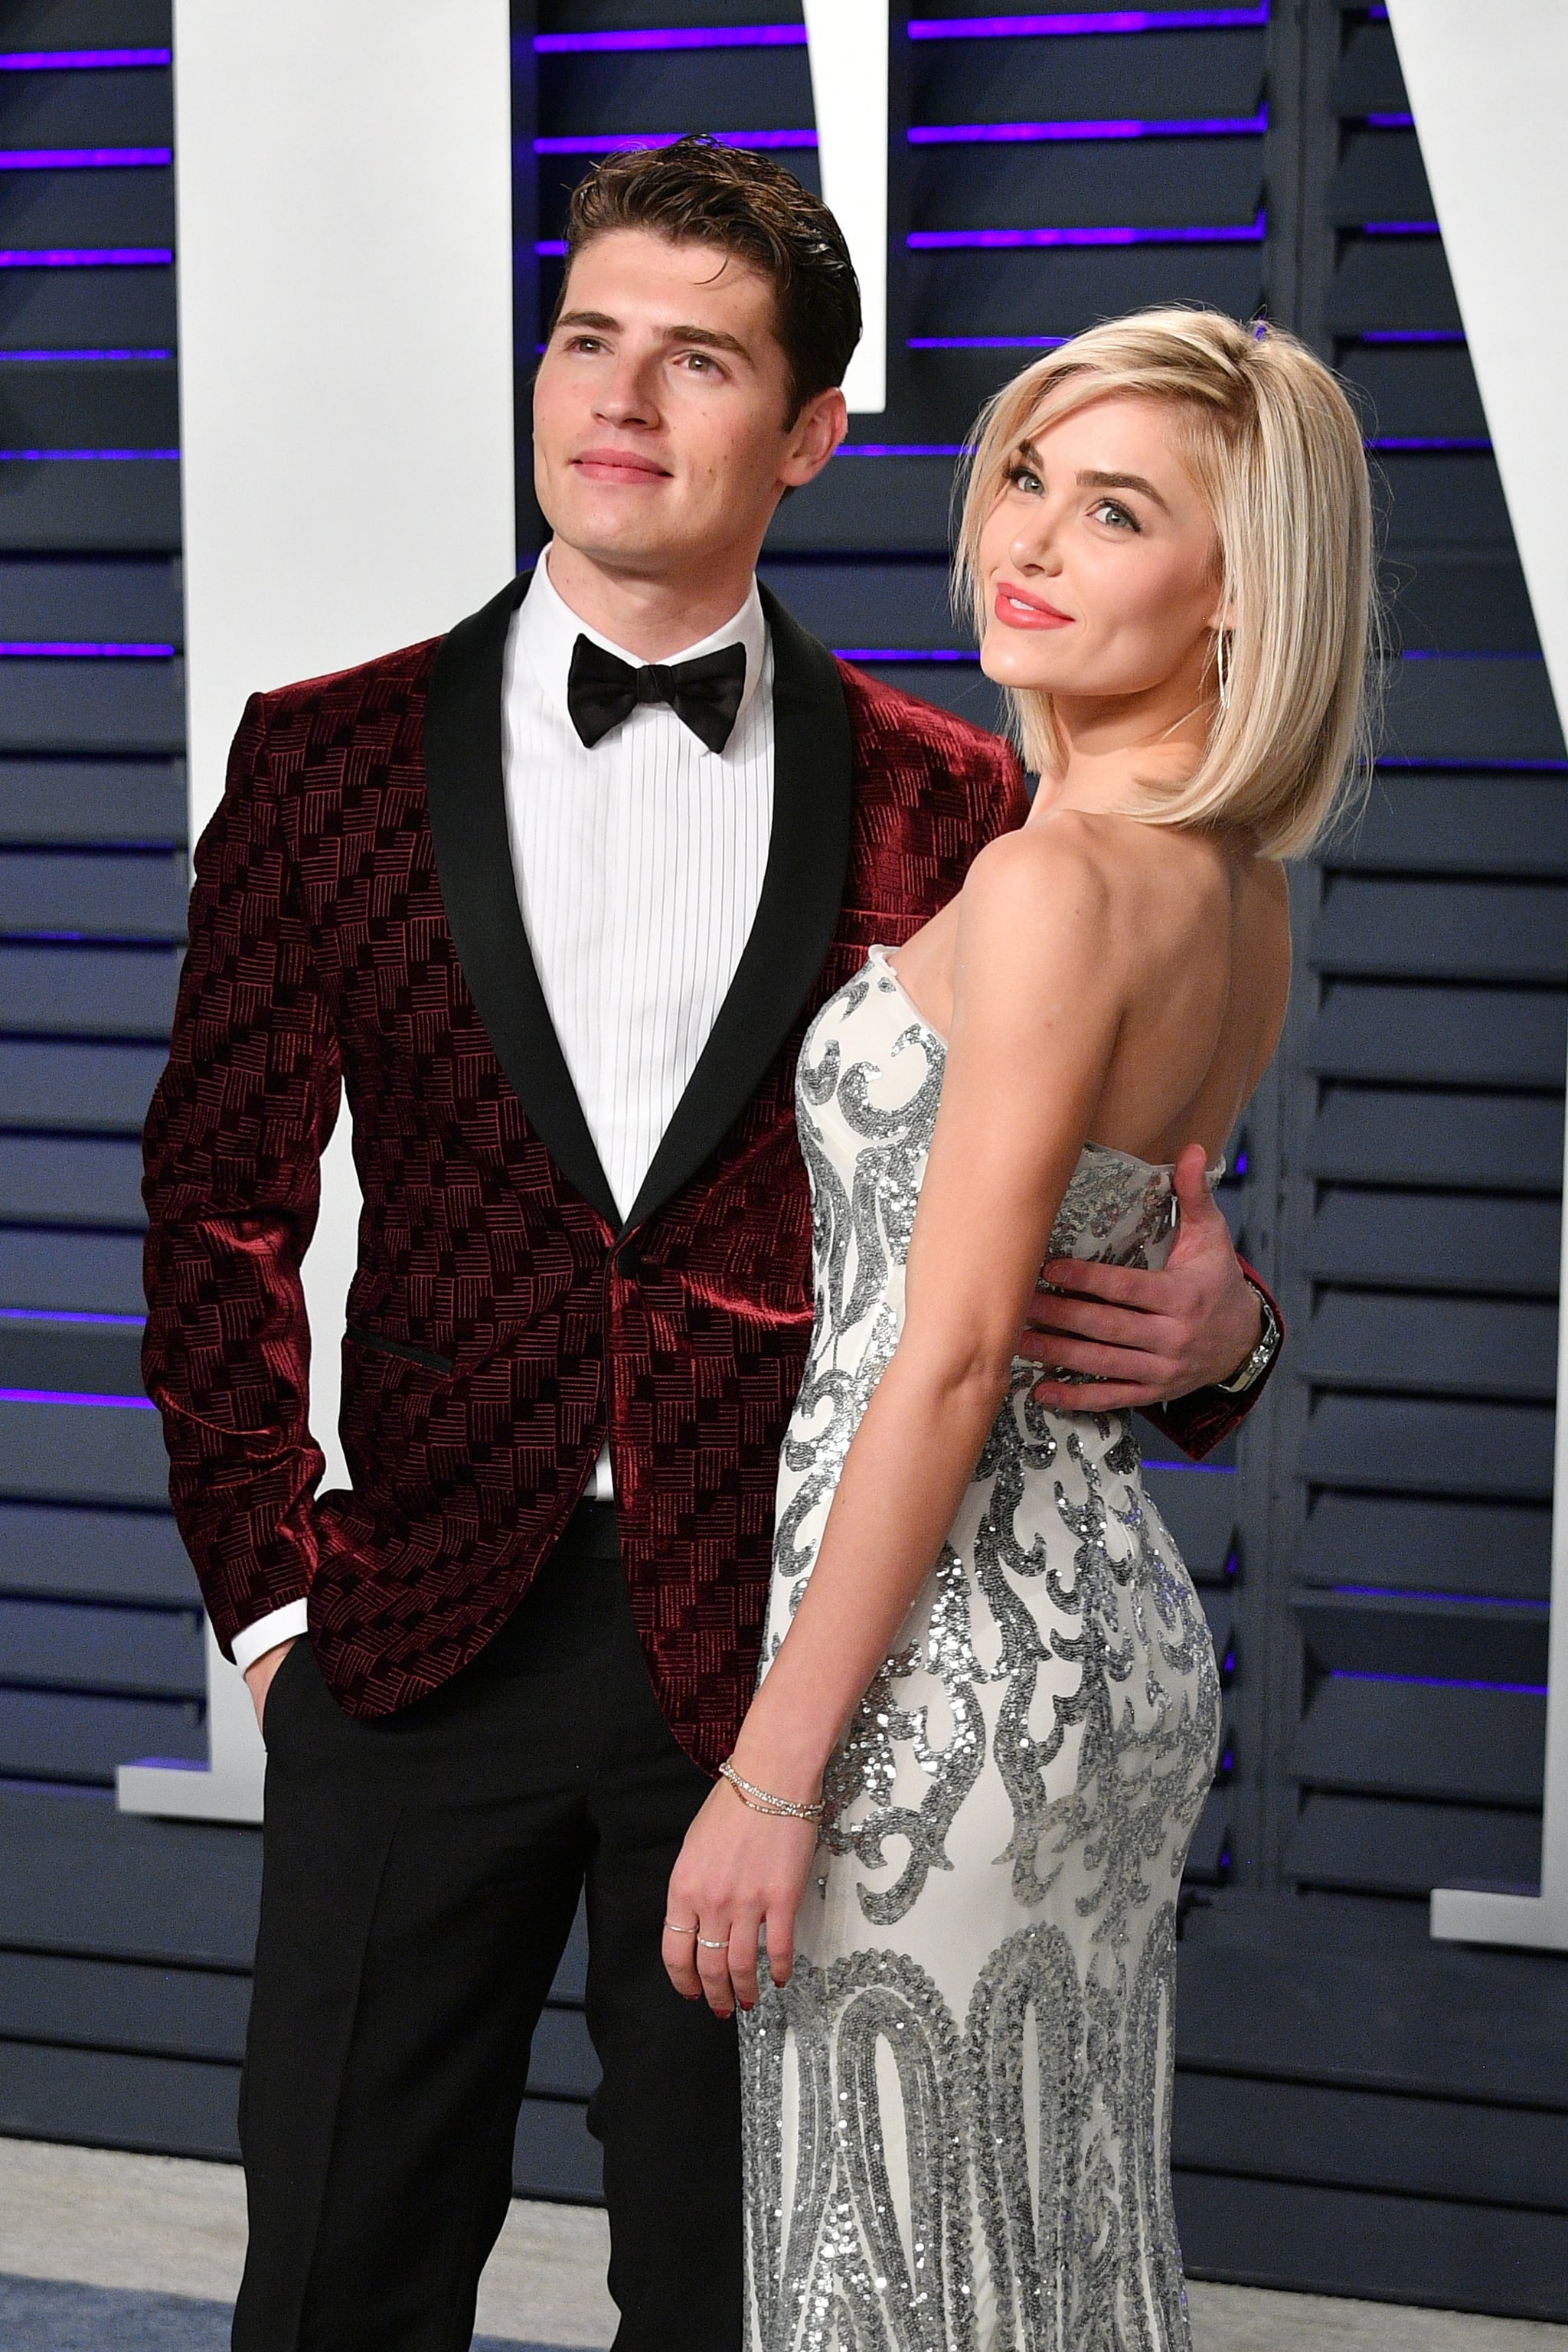 BEVERLY HILLS, CA - FEBRUARY 24:  Gregg Sulkin and Michelle Randolph attend the 2019 Vanity Fair Oscar Party hosted by Radhika Jones at Wallis Annenberg Center for the Performing Arts on February 24, 2019 in Beverly Hills, California.  (Photo by Dia Dipasupil/Getty Images)